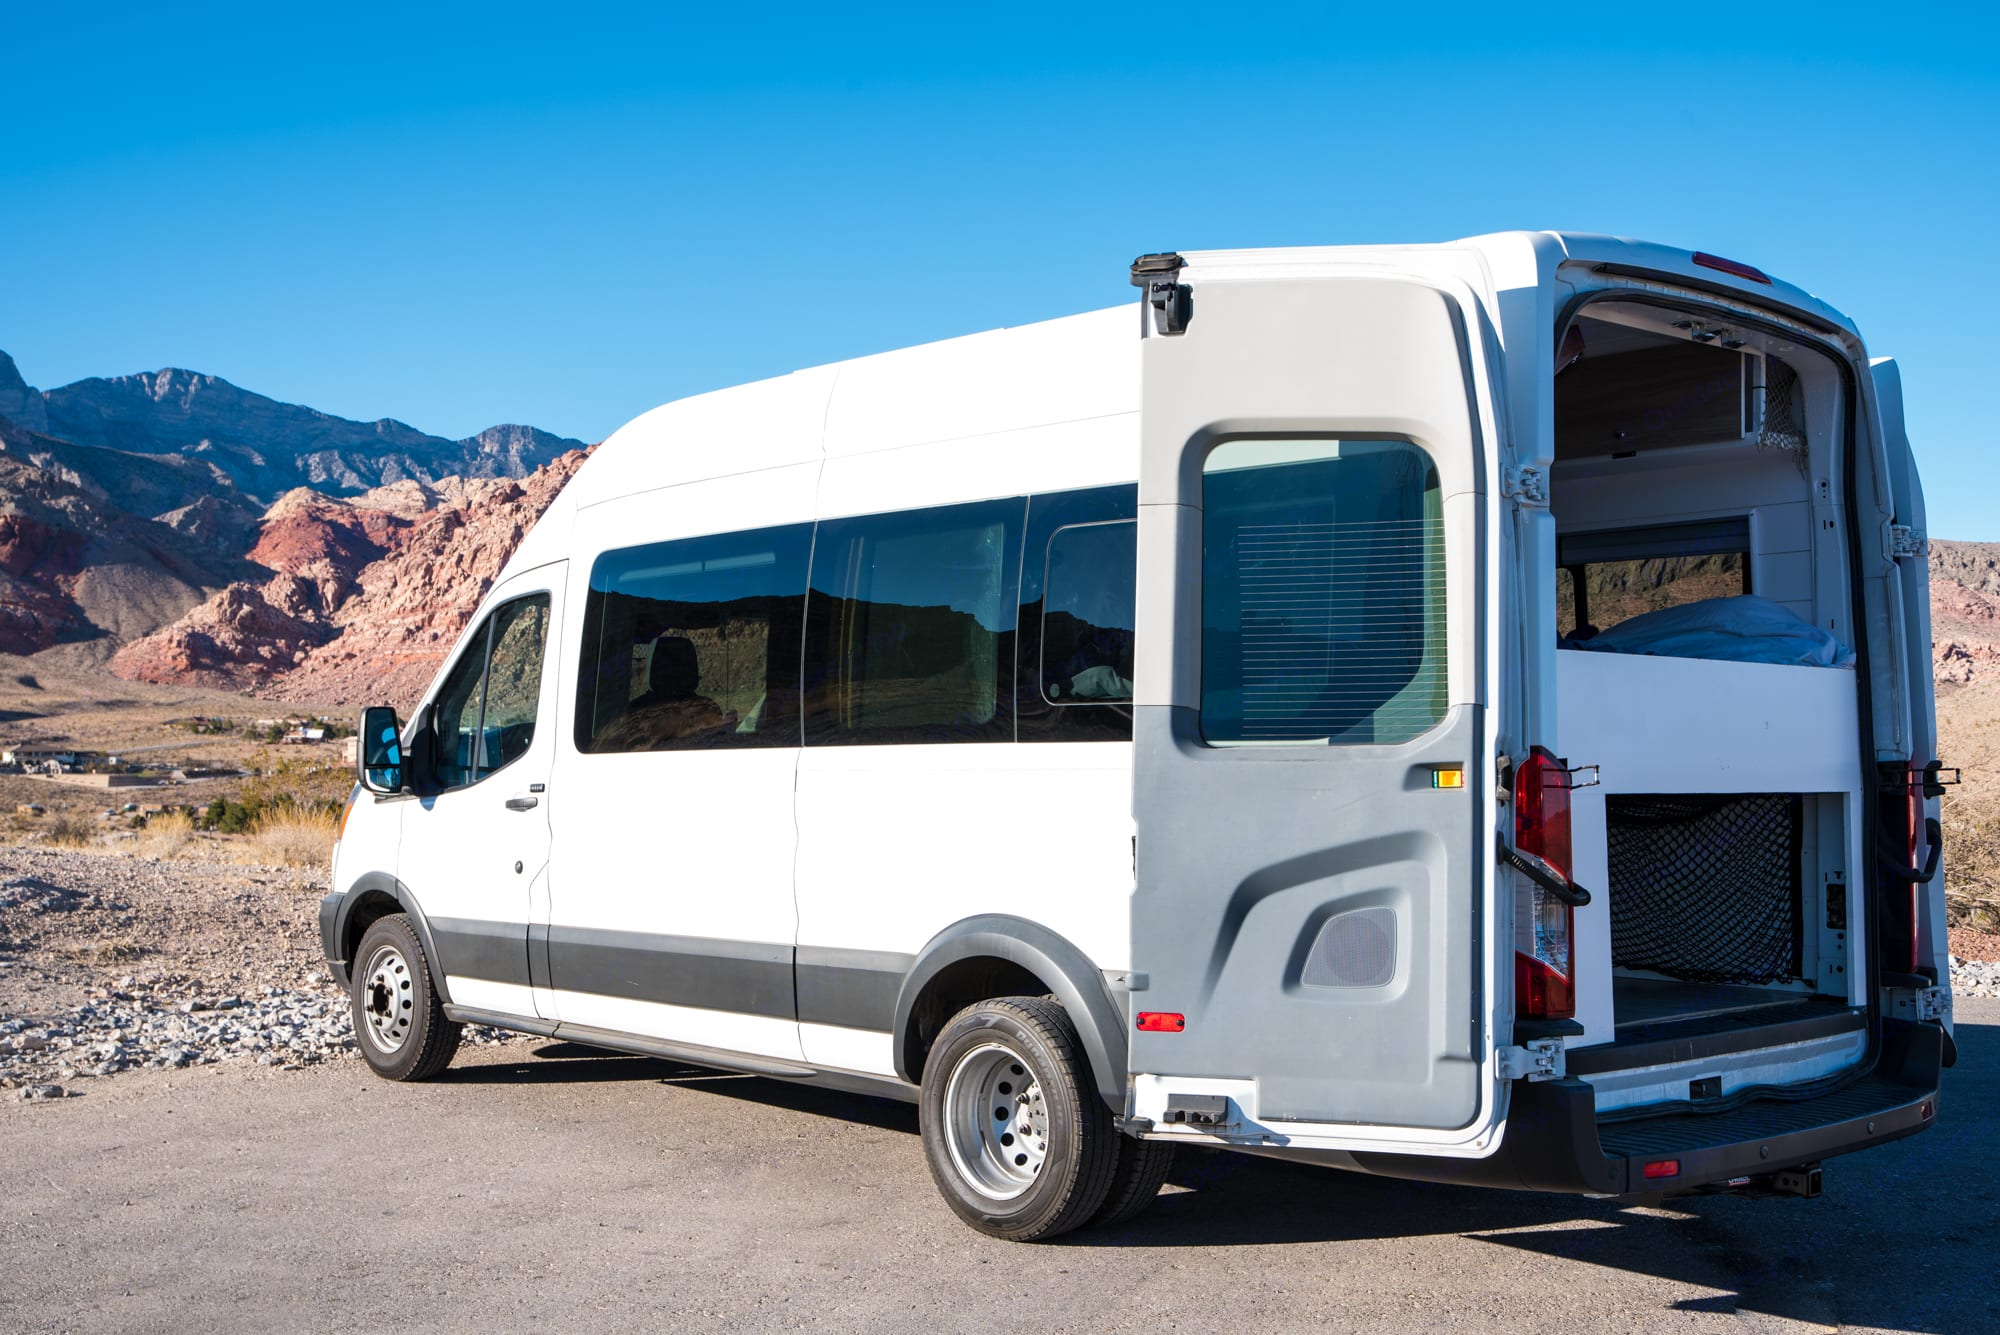 The windows all around mean you get great views also when inside the van. . Ford Transit 2016